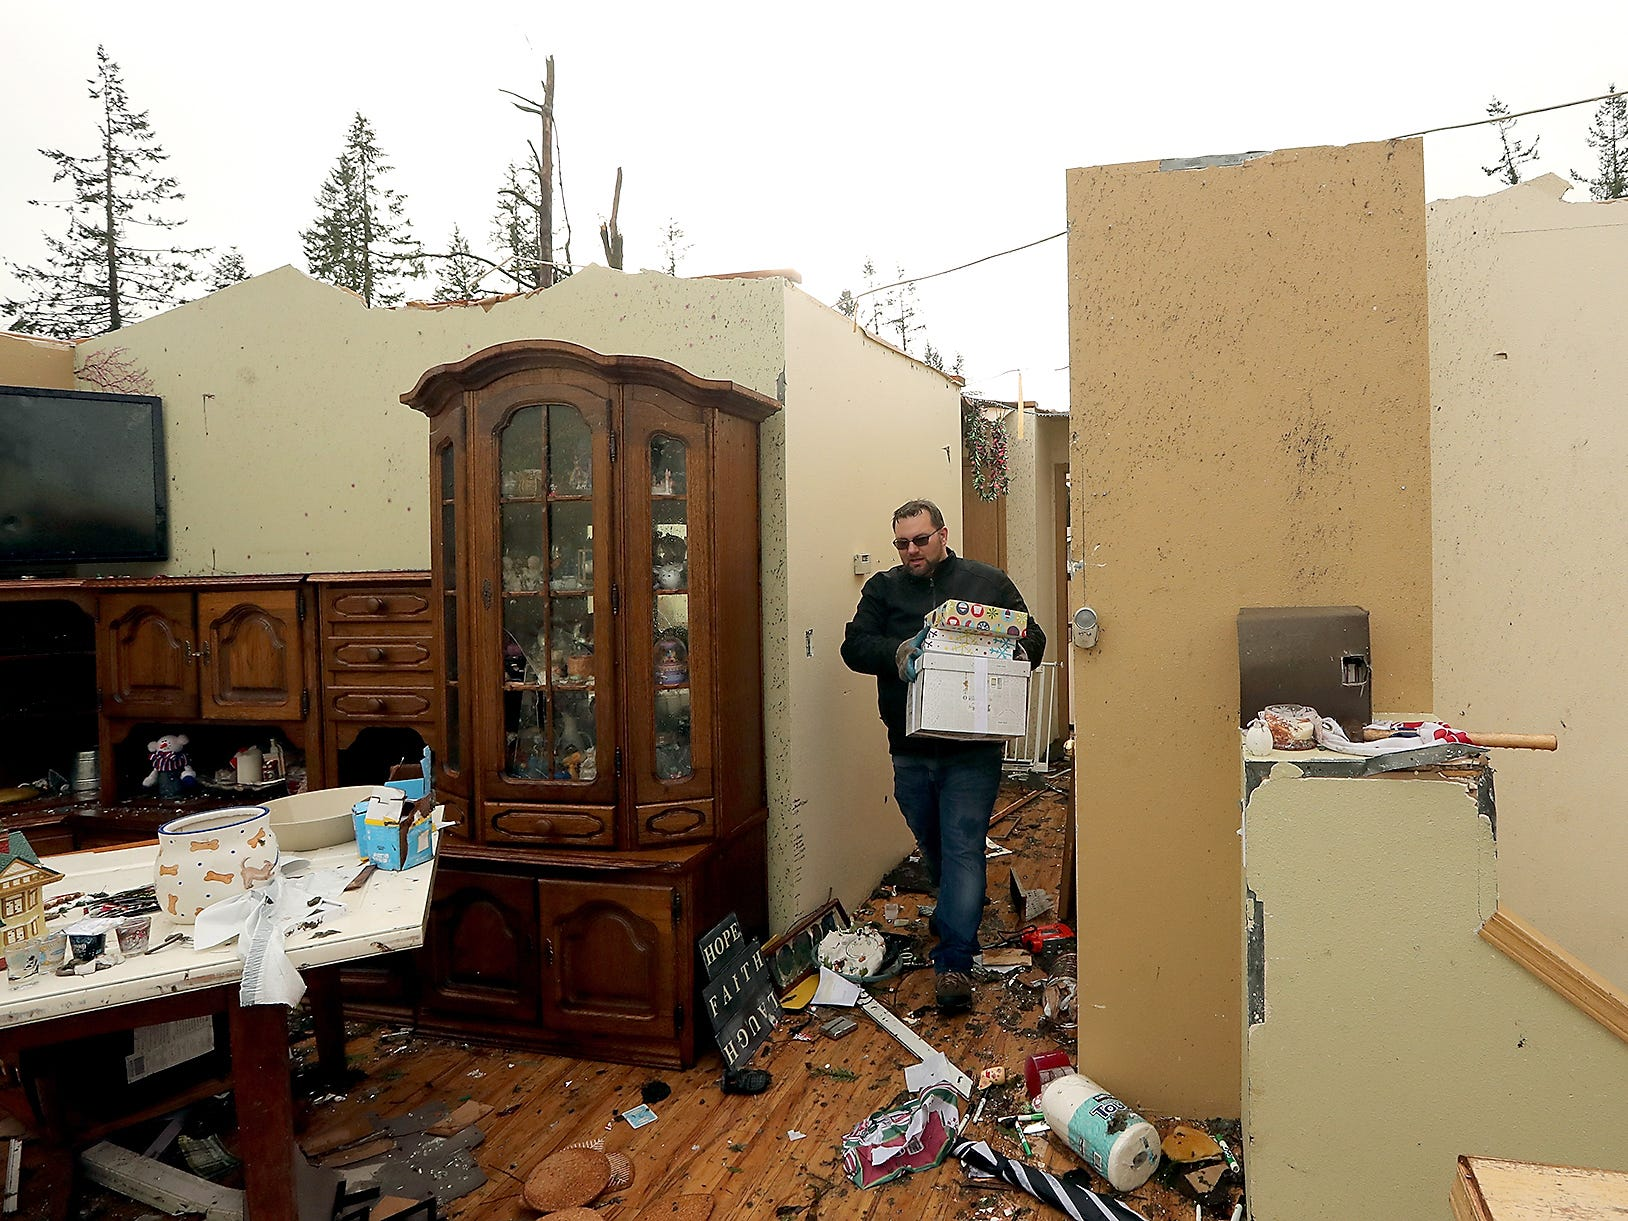 John Mueller carries boxes through the hallway of his now roofless home as he and his family try to salvage what they can from their  home on Tiburon Court in Port Orchard on Wednesday, December 19, 2018.